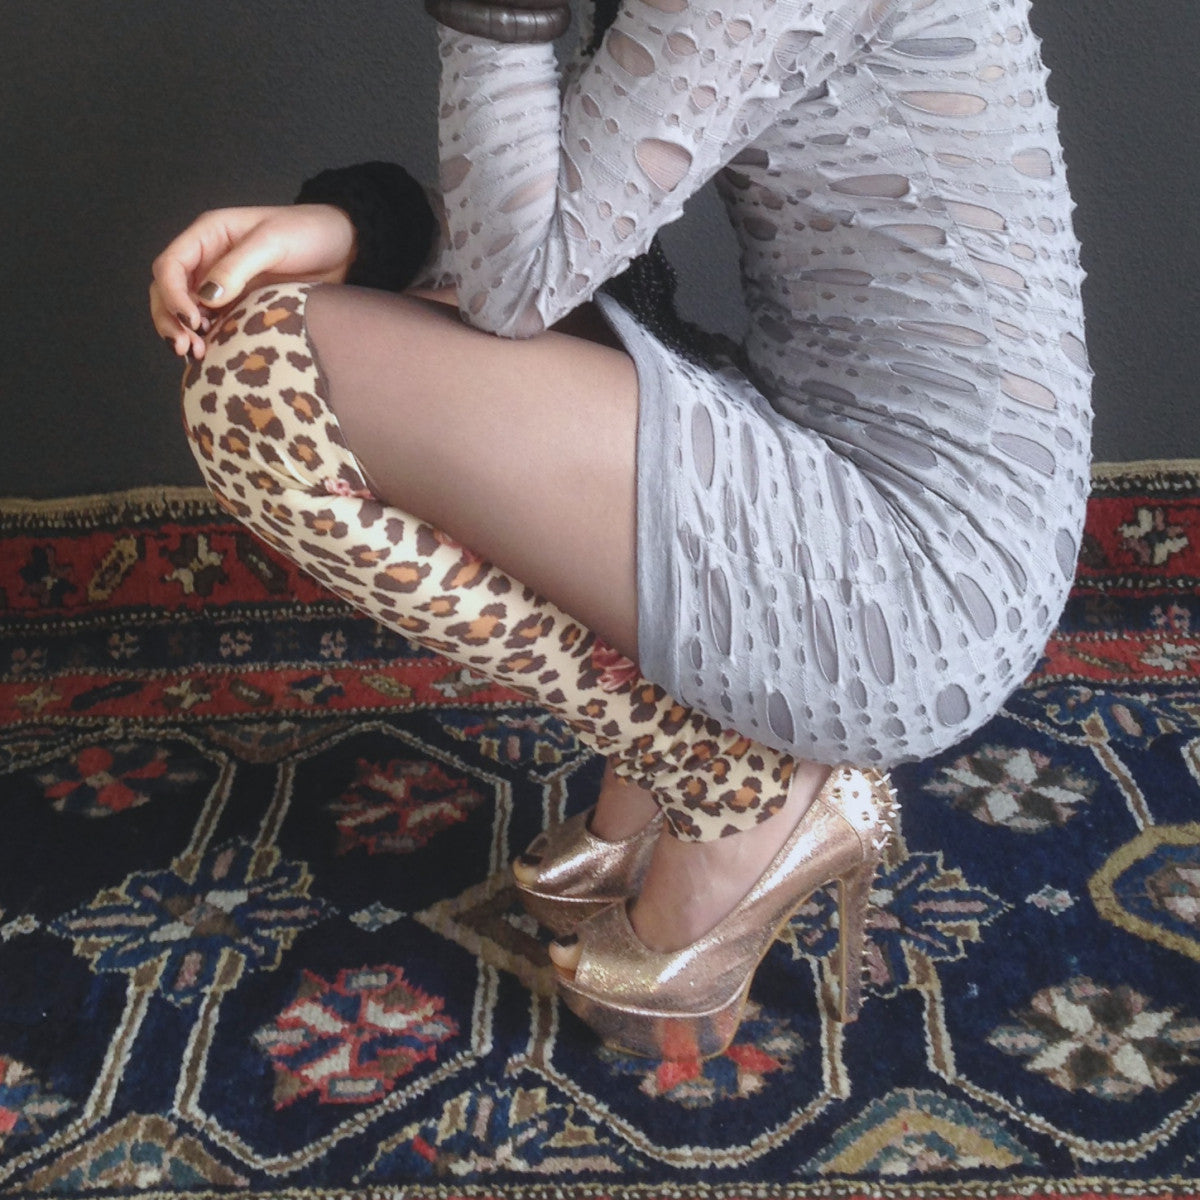 Leggings - faux tights with animal print